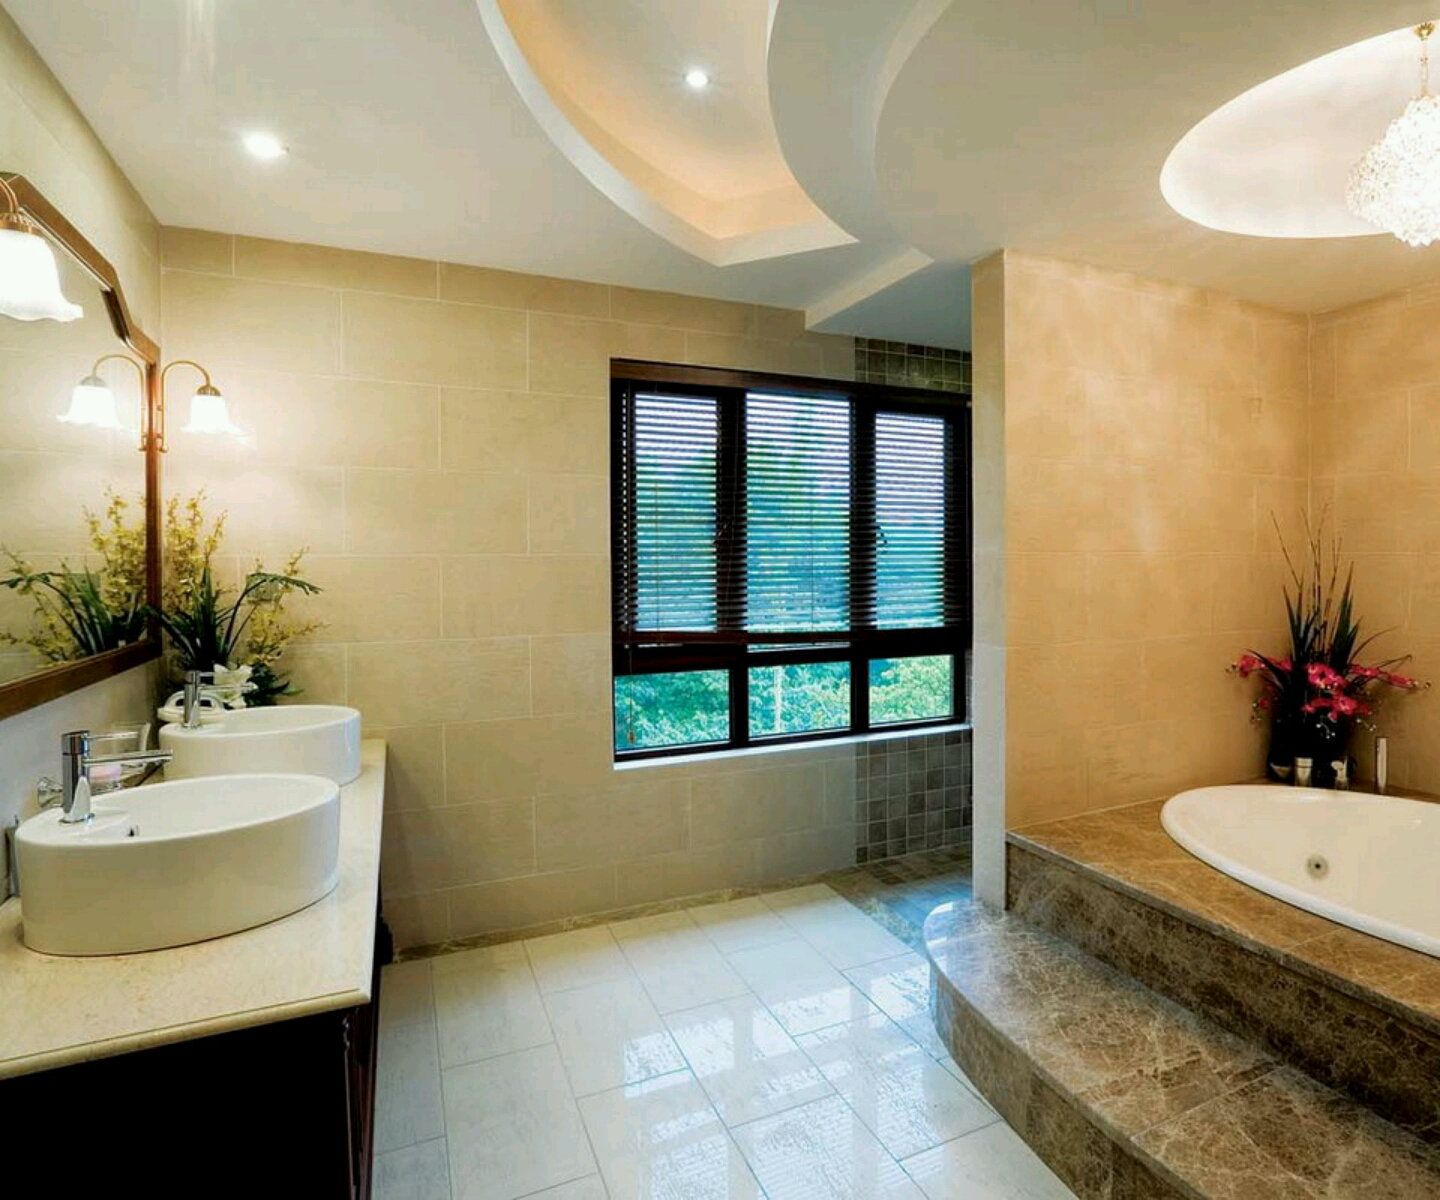 New home designs latest ultra modern washroom designs ideas - Washroom designs ...